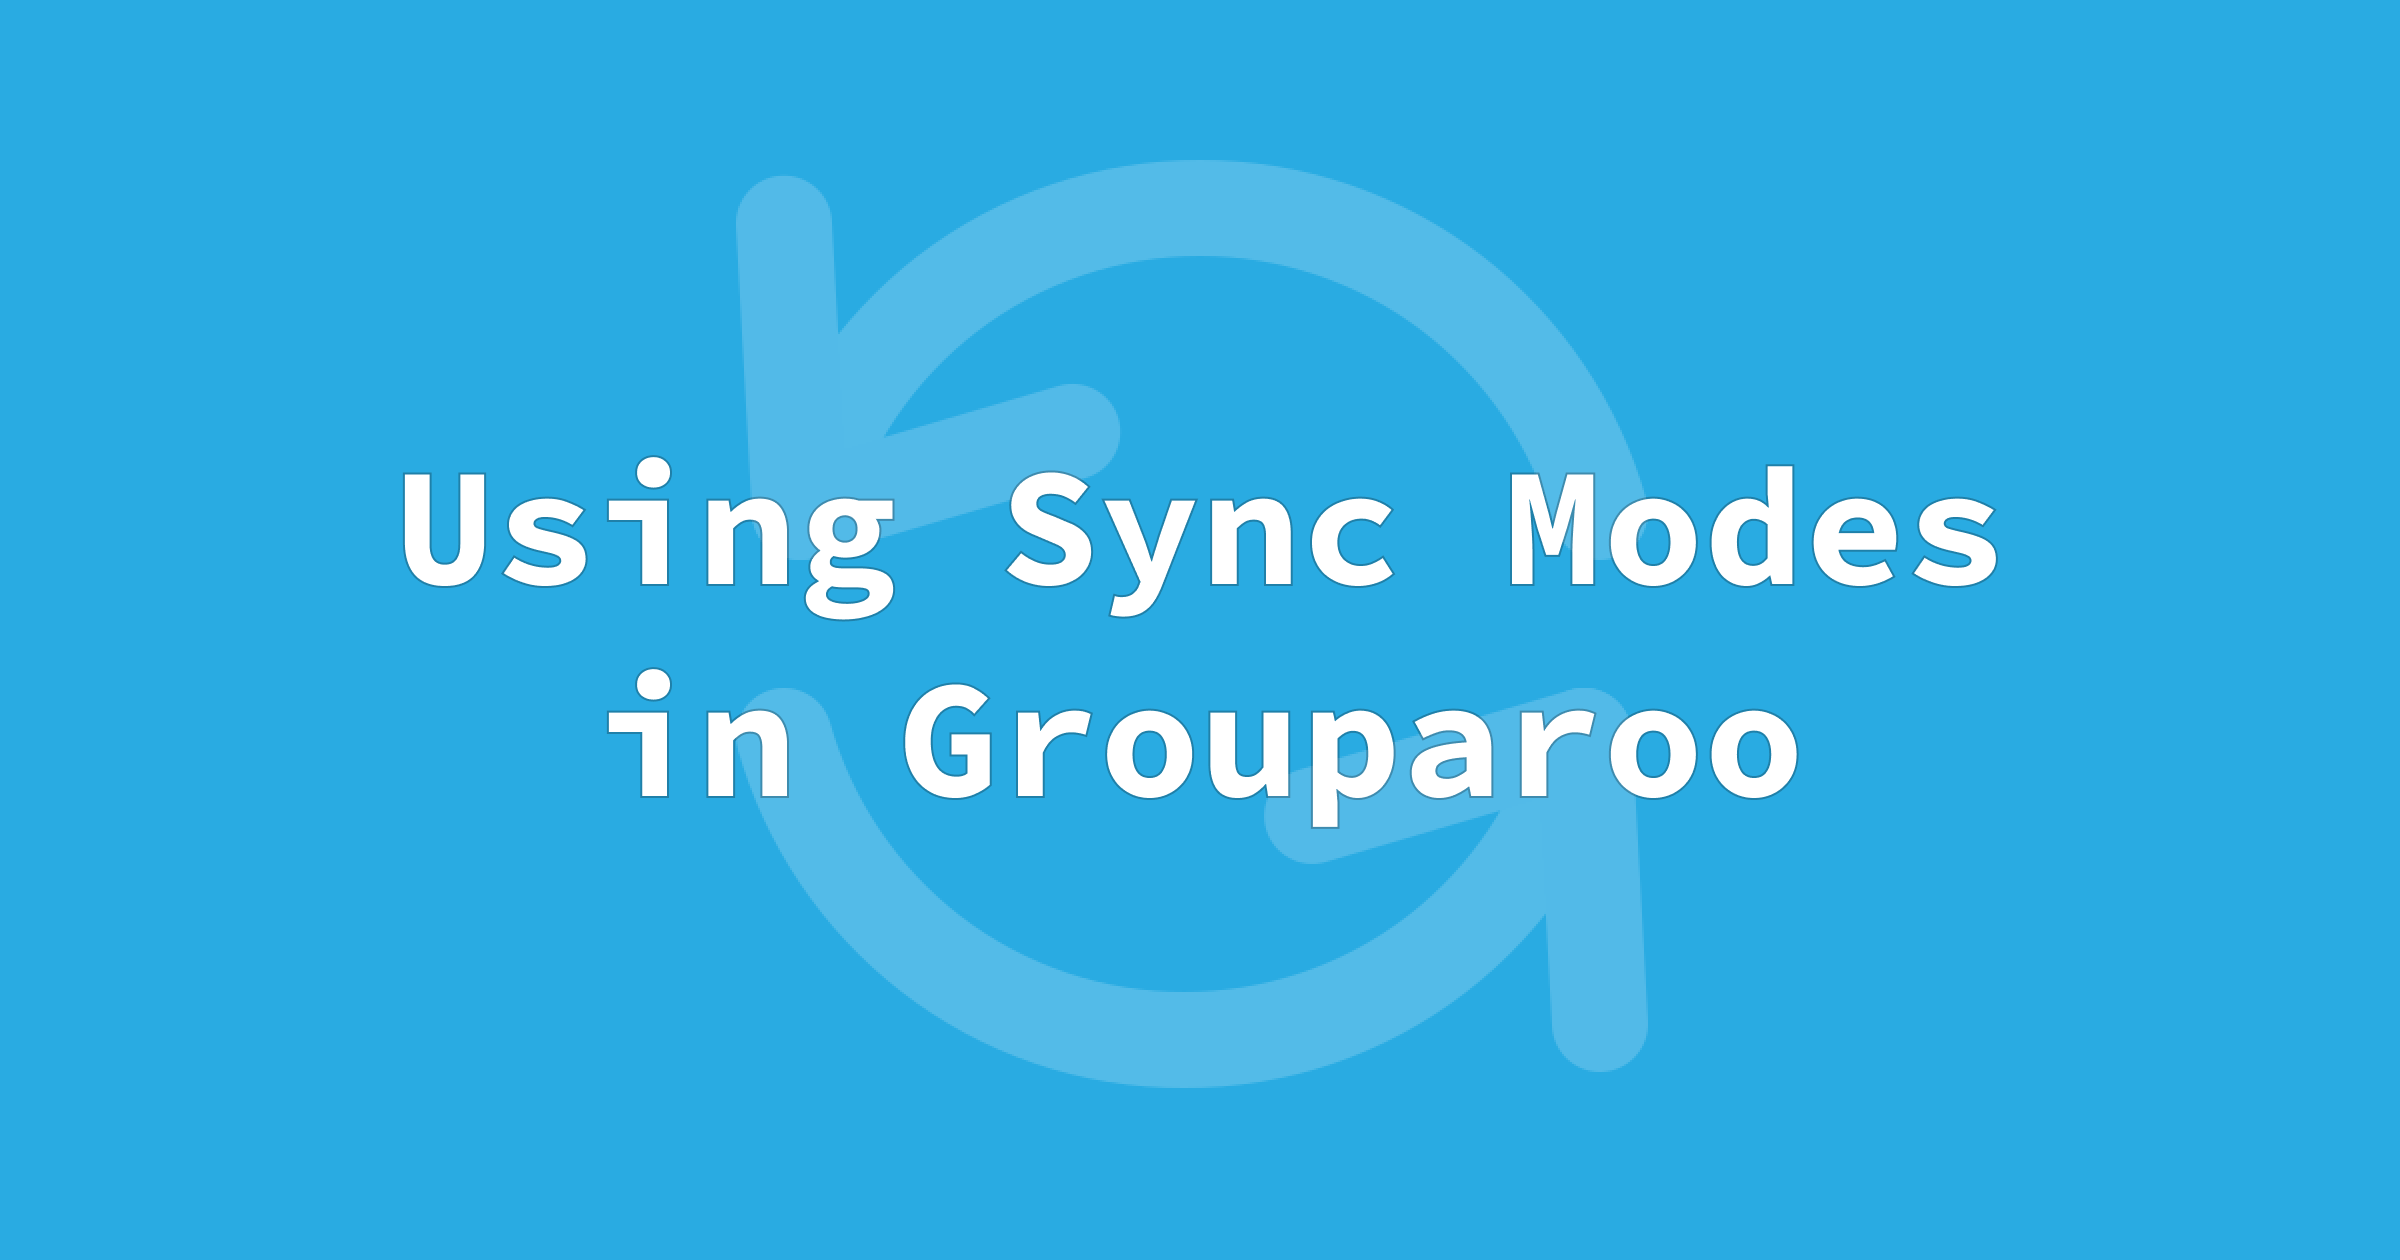 Using sync modes in Grouparoo